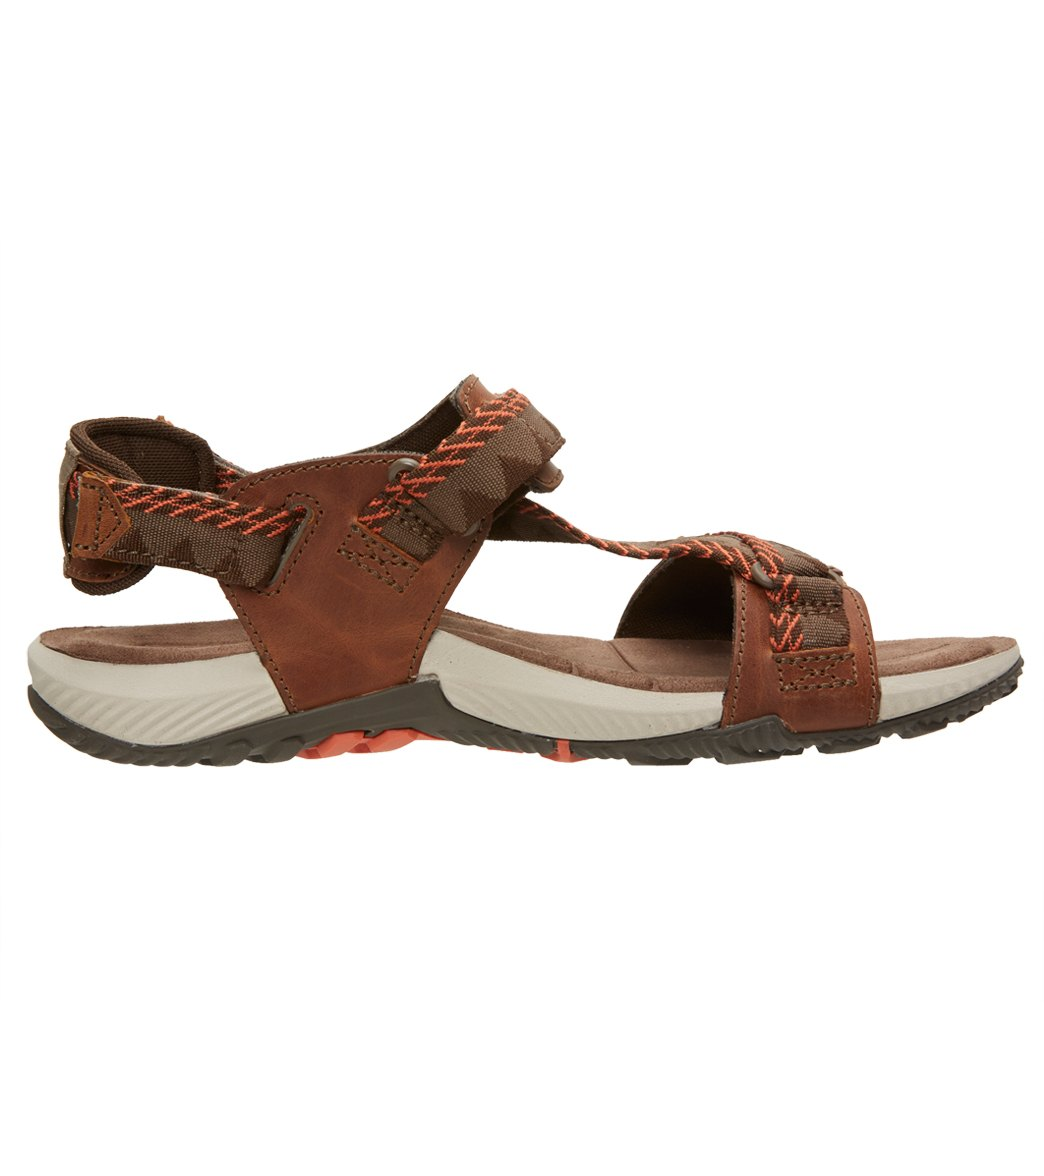 d52a7a310369 Merrell Men s Terrant Convertible Sandal at SwimOutlet.com - Free ...